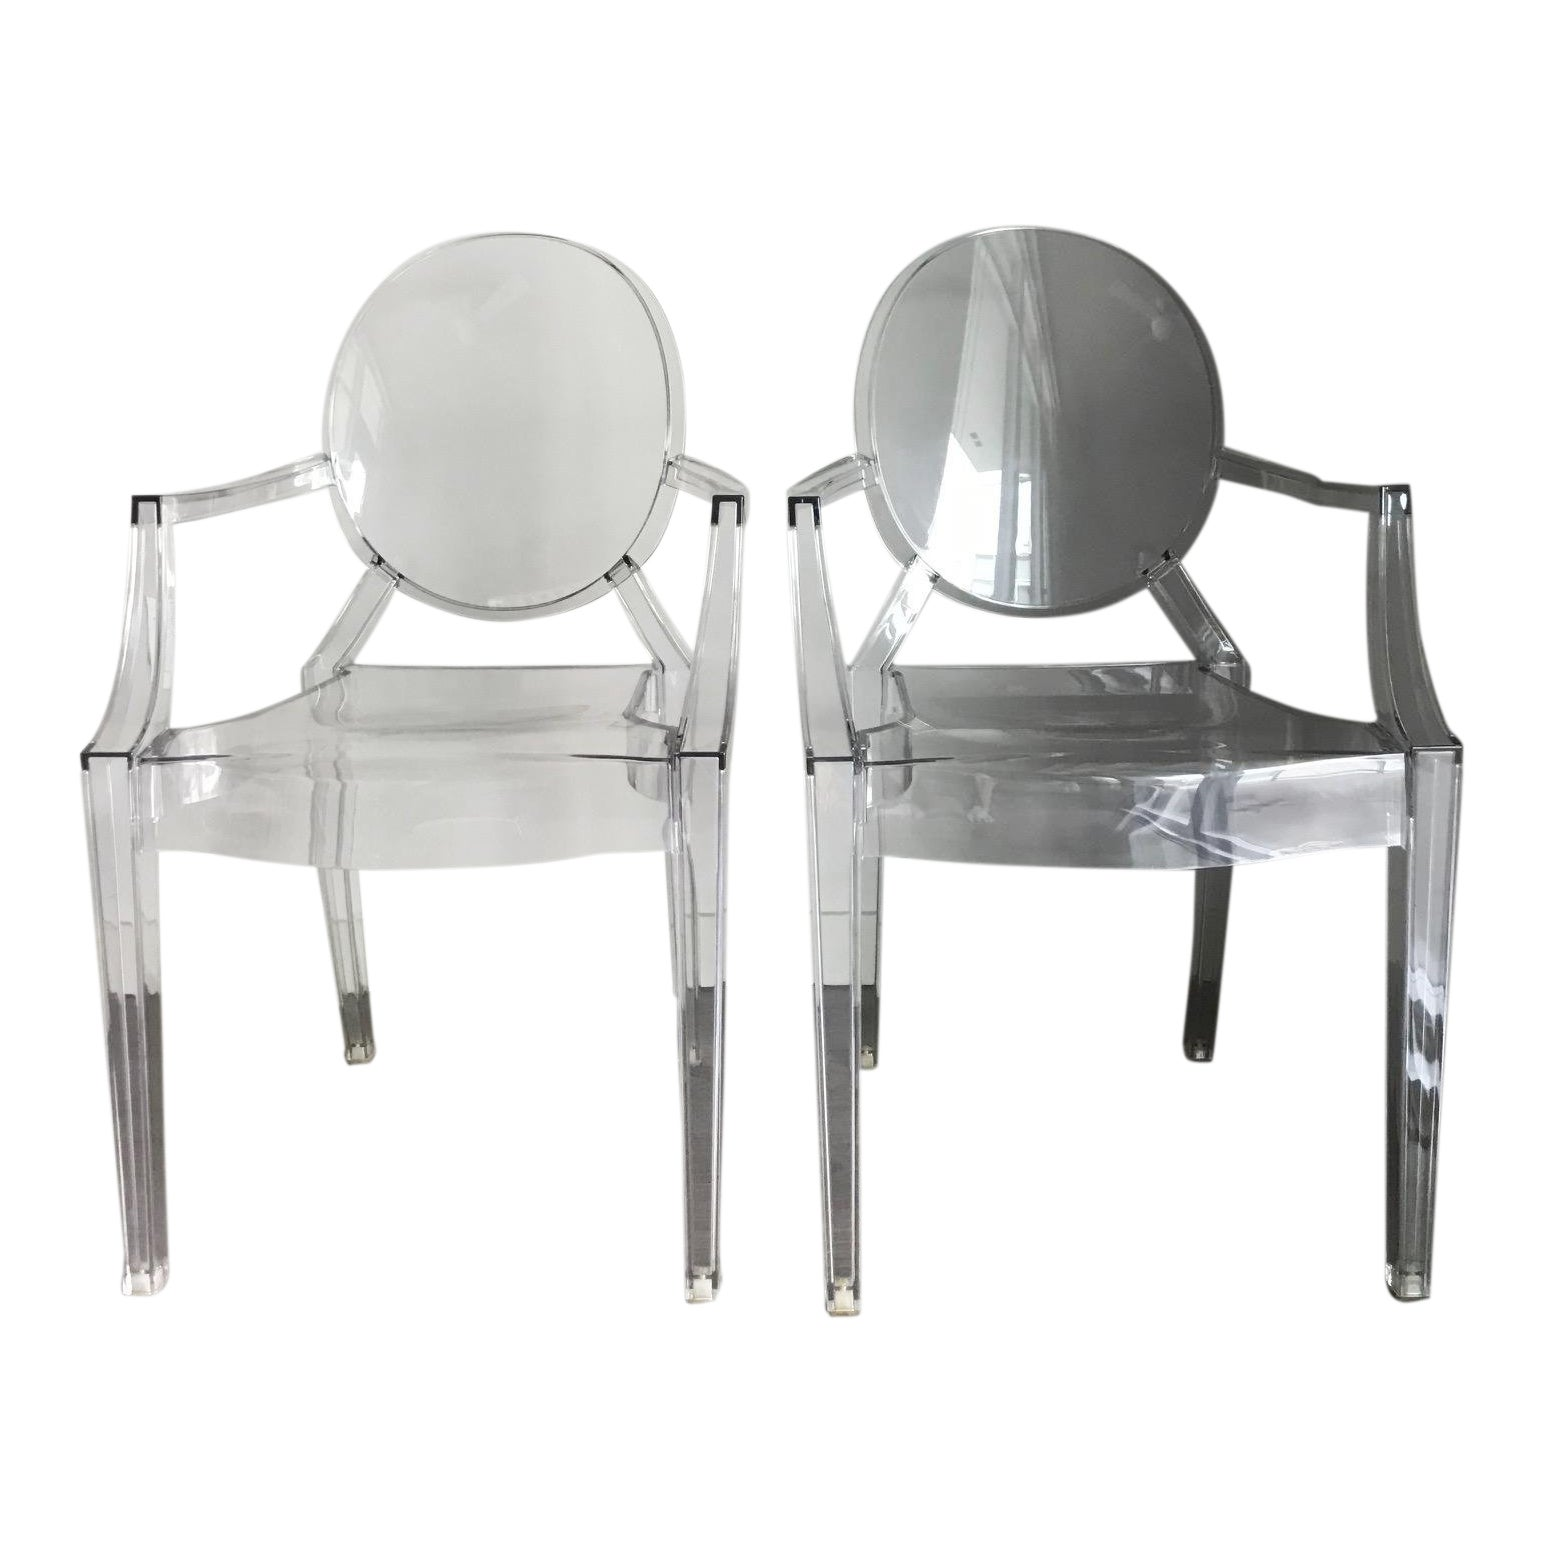 Modern philippe starck for kartell louis ghost armchairs a pair chairish